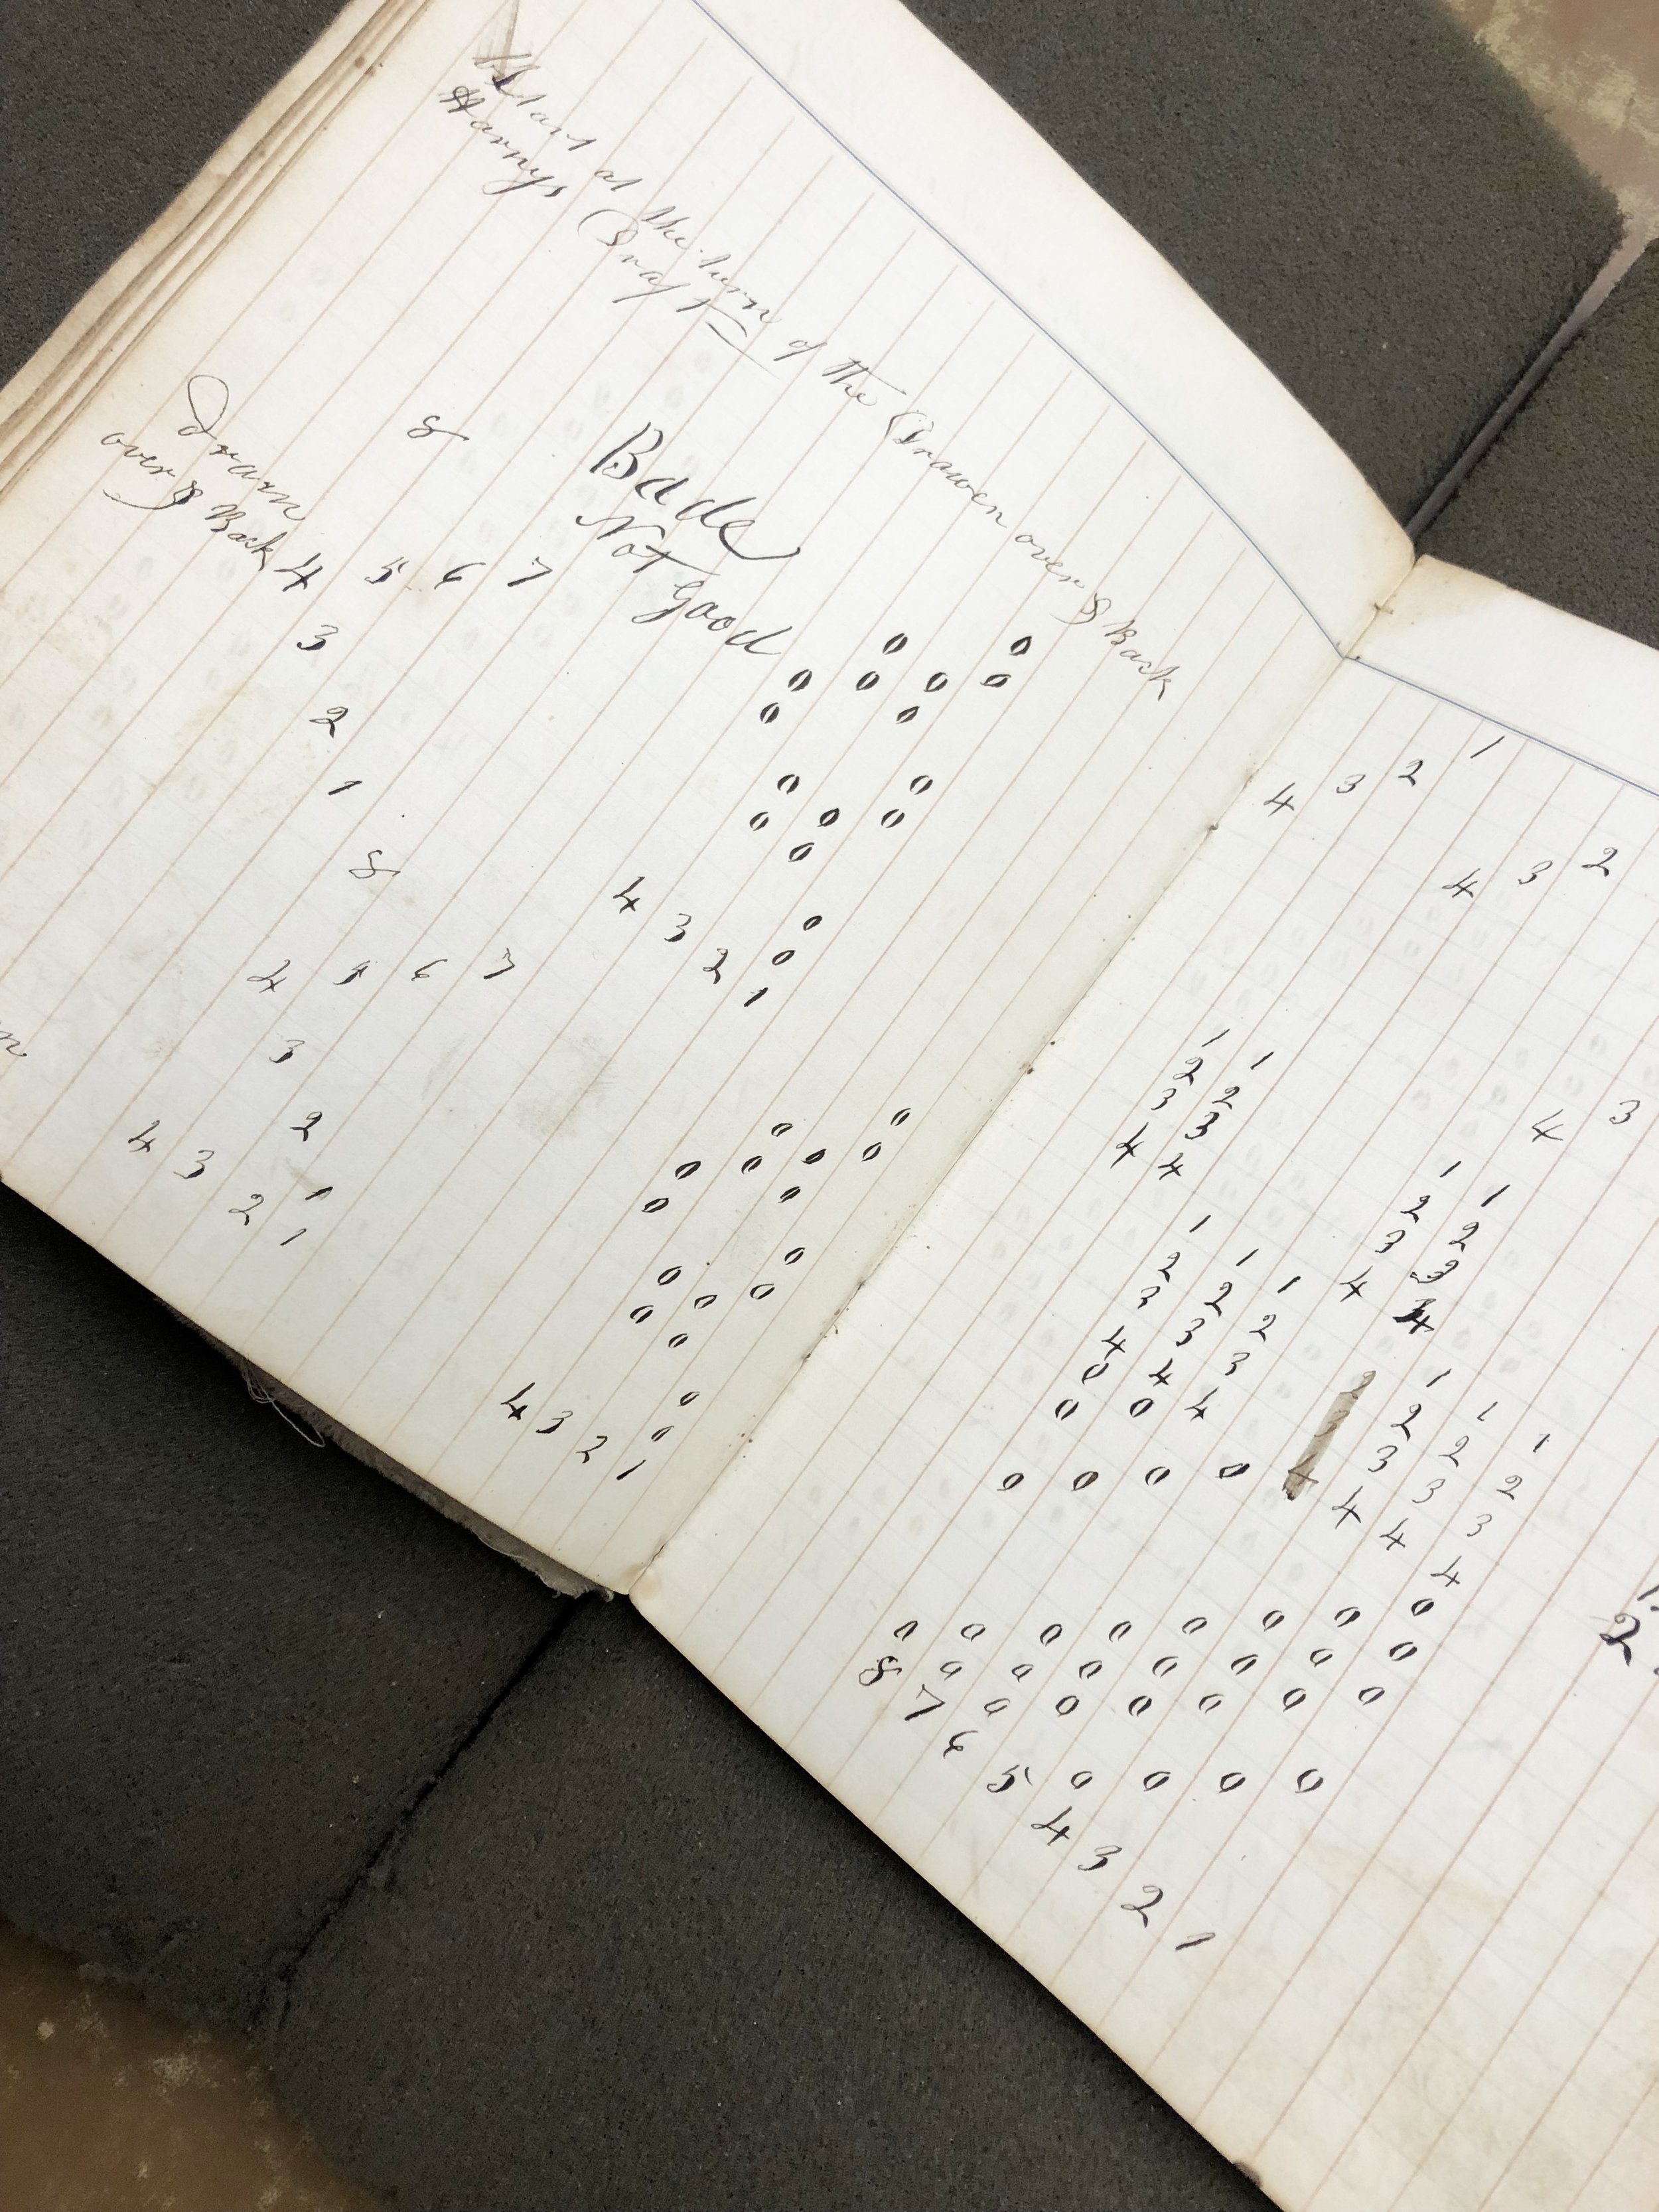 Weaver's draft book from 1867.